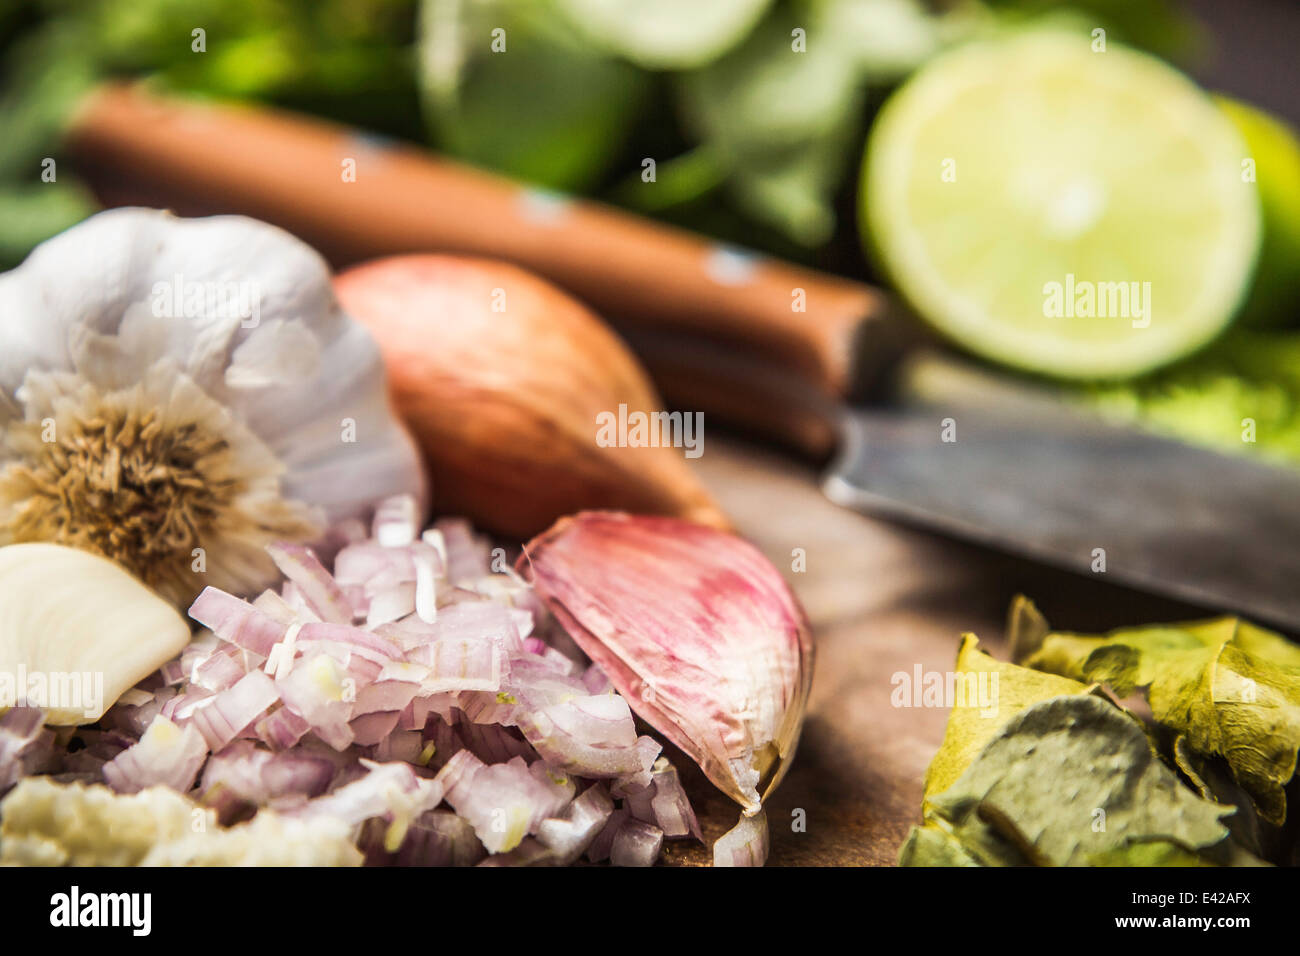 Ingredients for making green curry paste - Stock Image